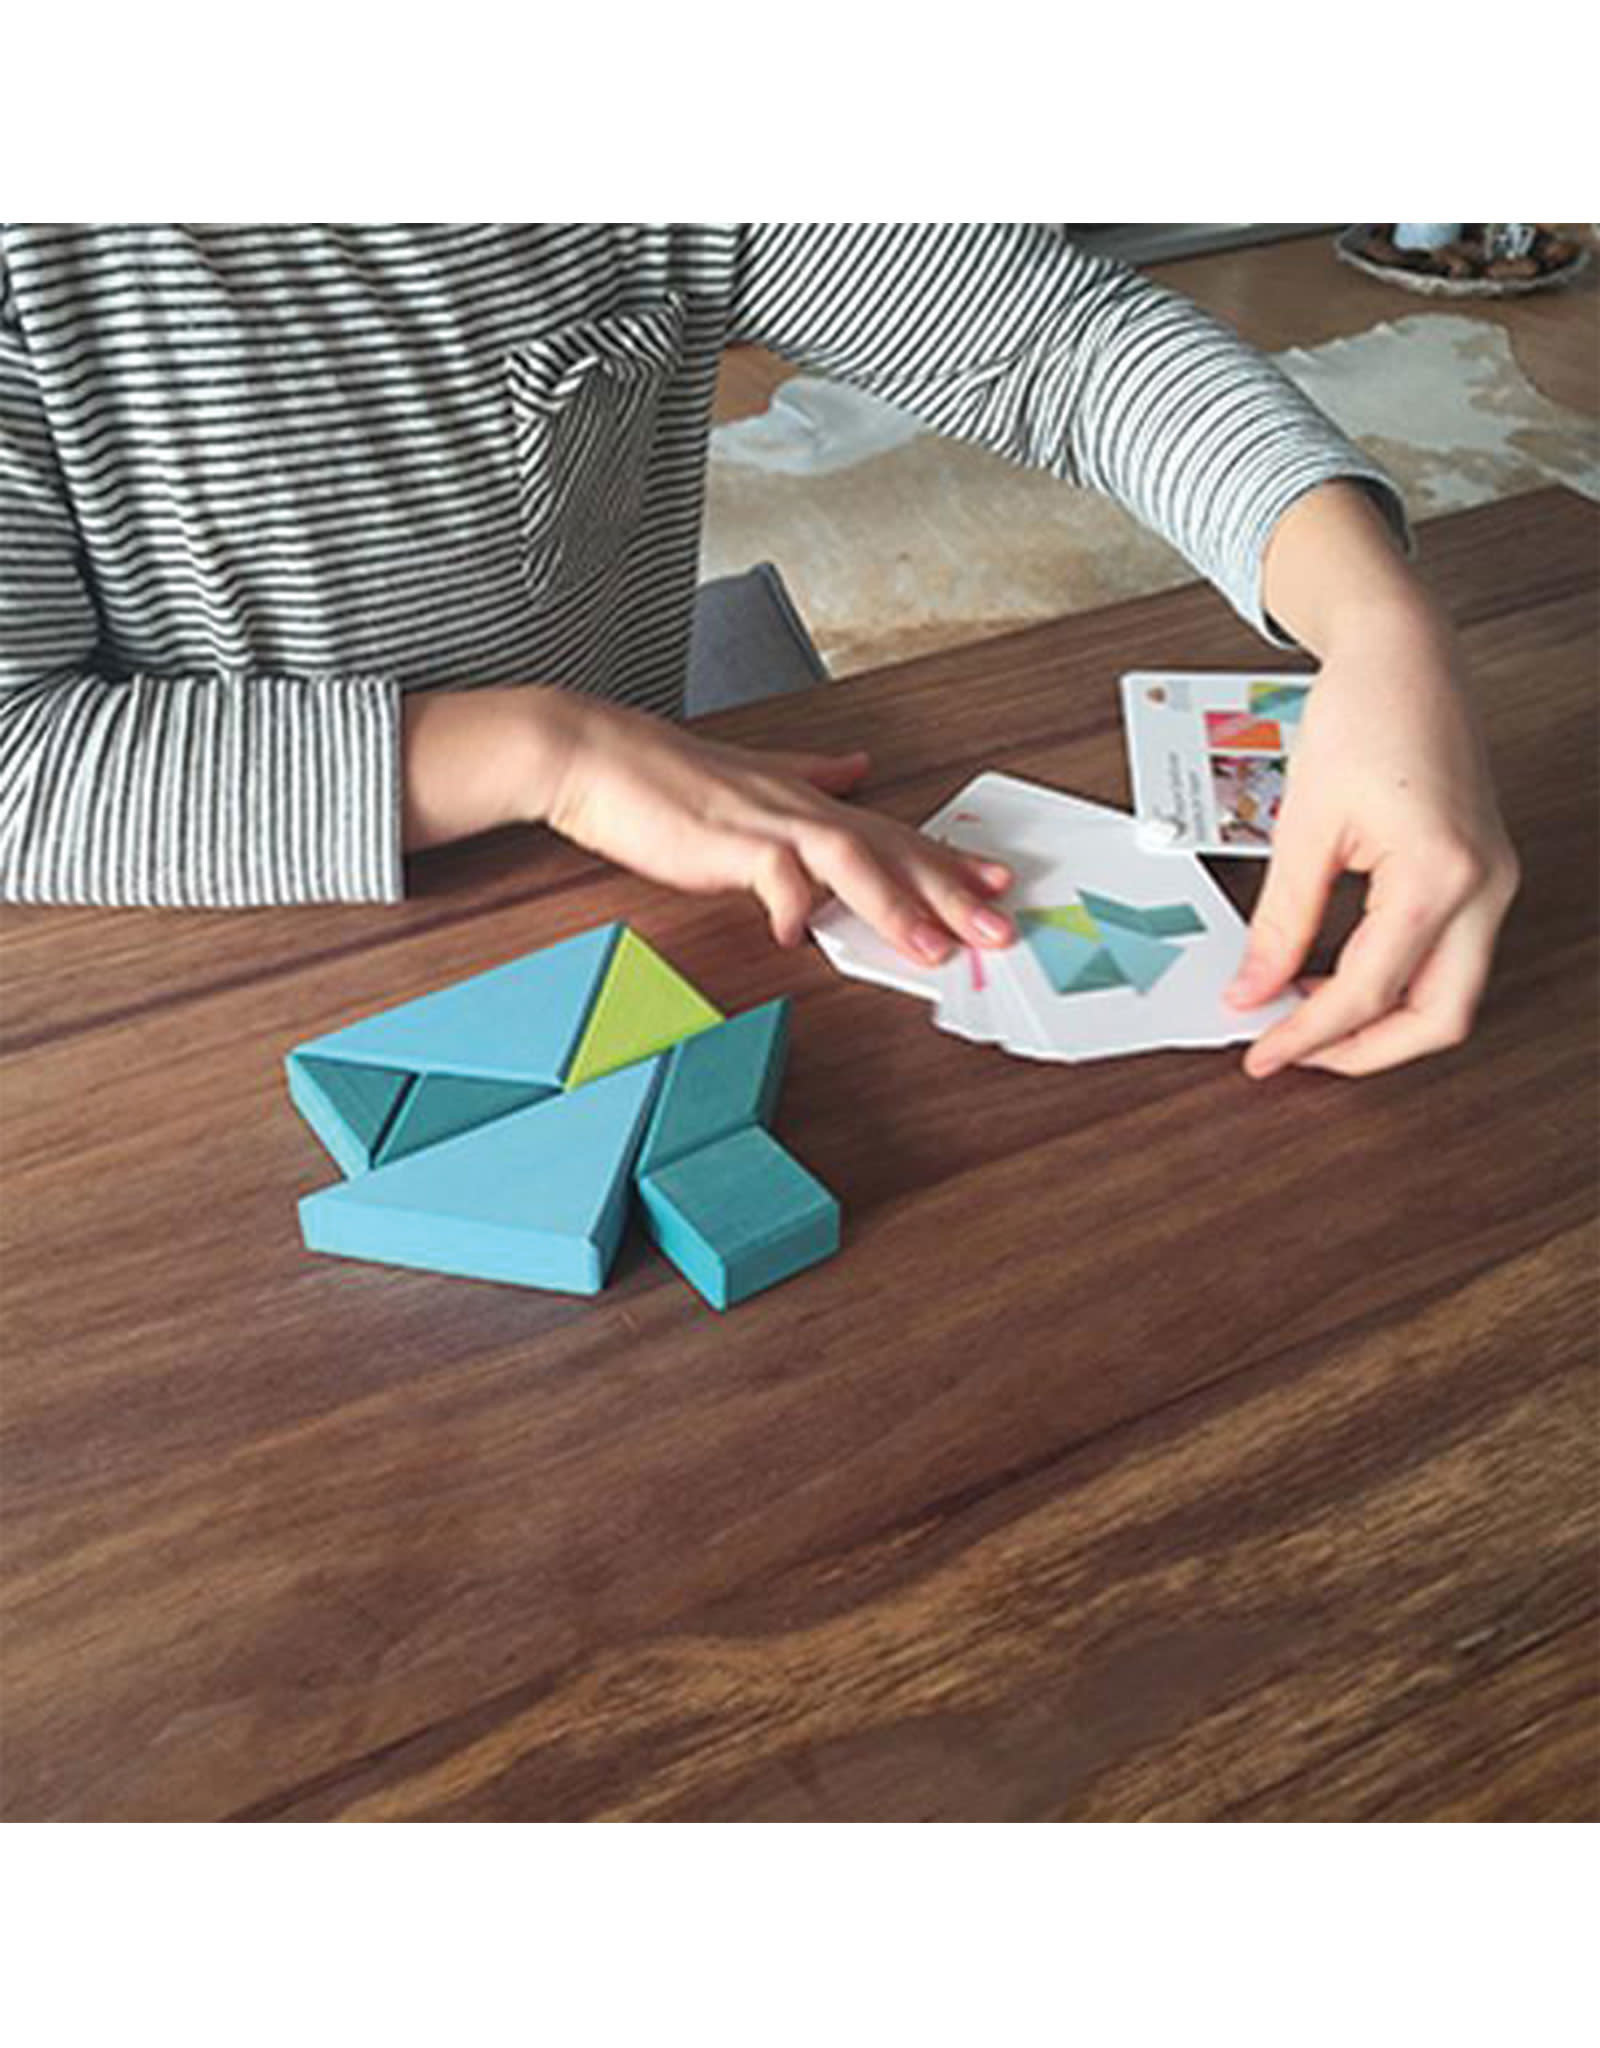 Grimm's Tangram Puzzle Bleu and Green